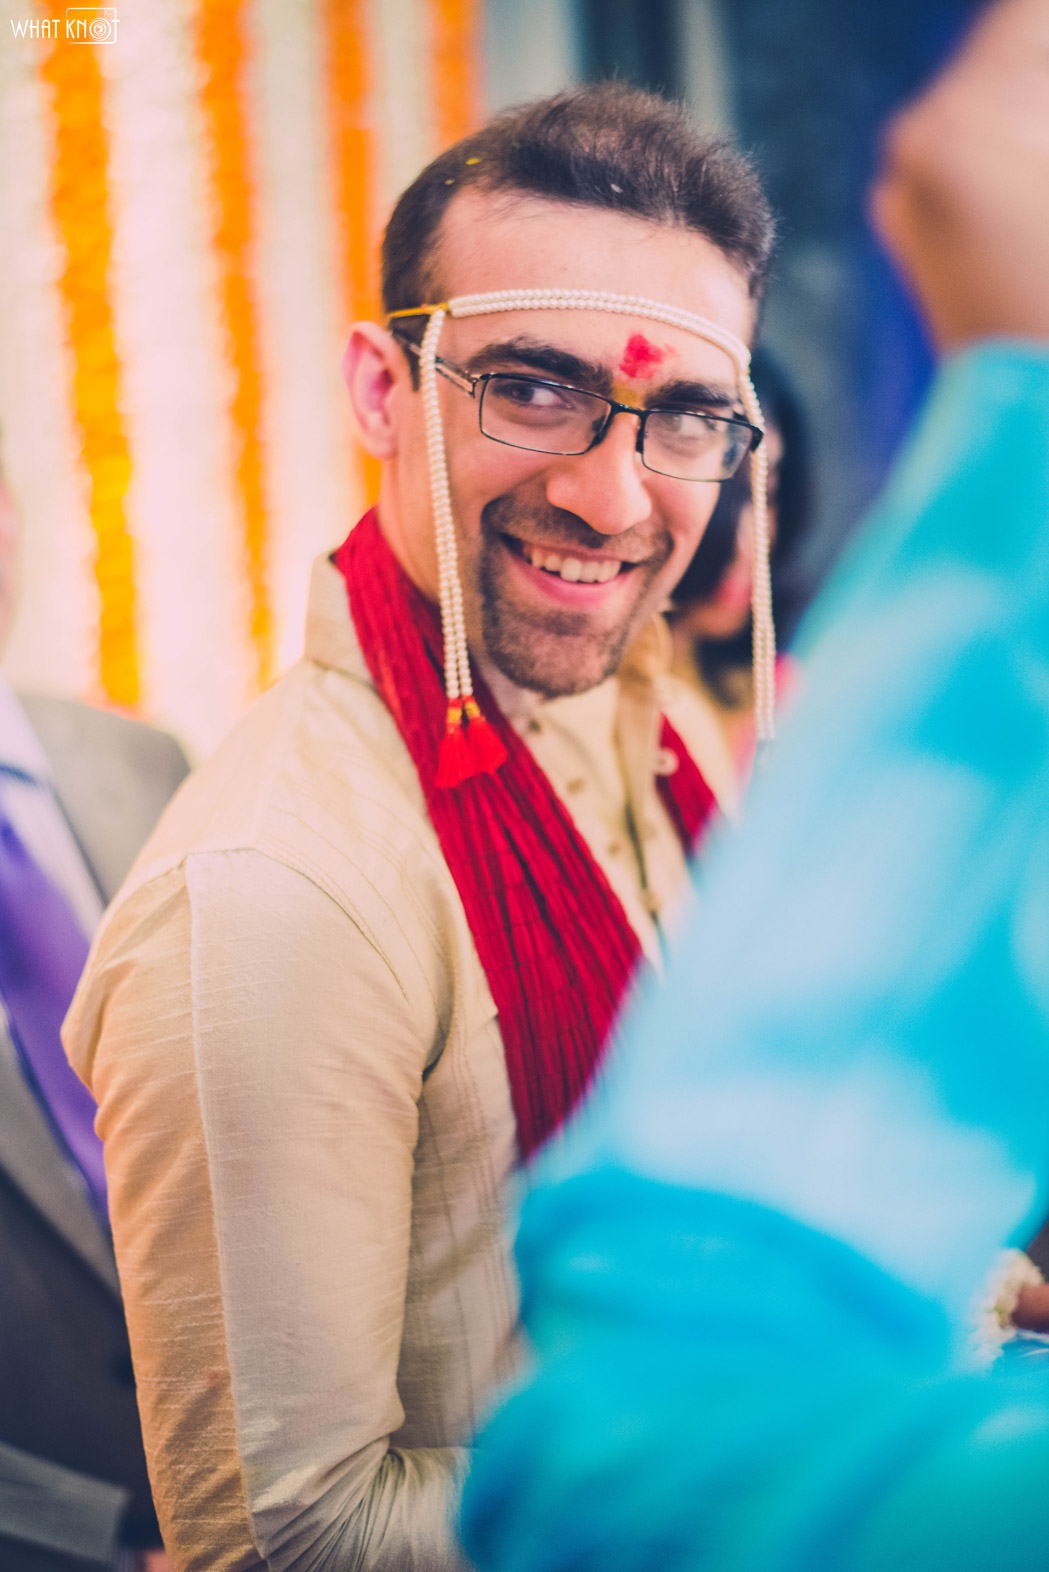 Candid-Wedding-Photography-WhatKnot-Marathi-150